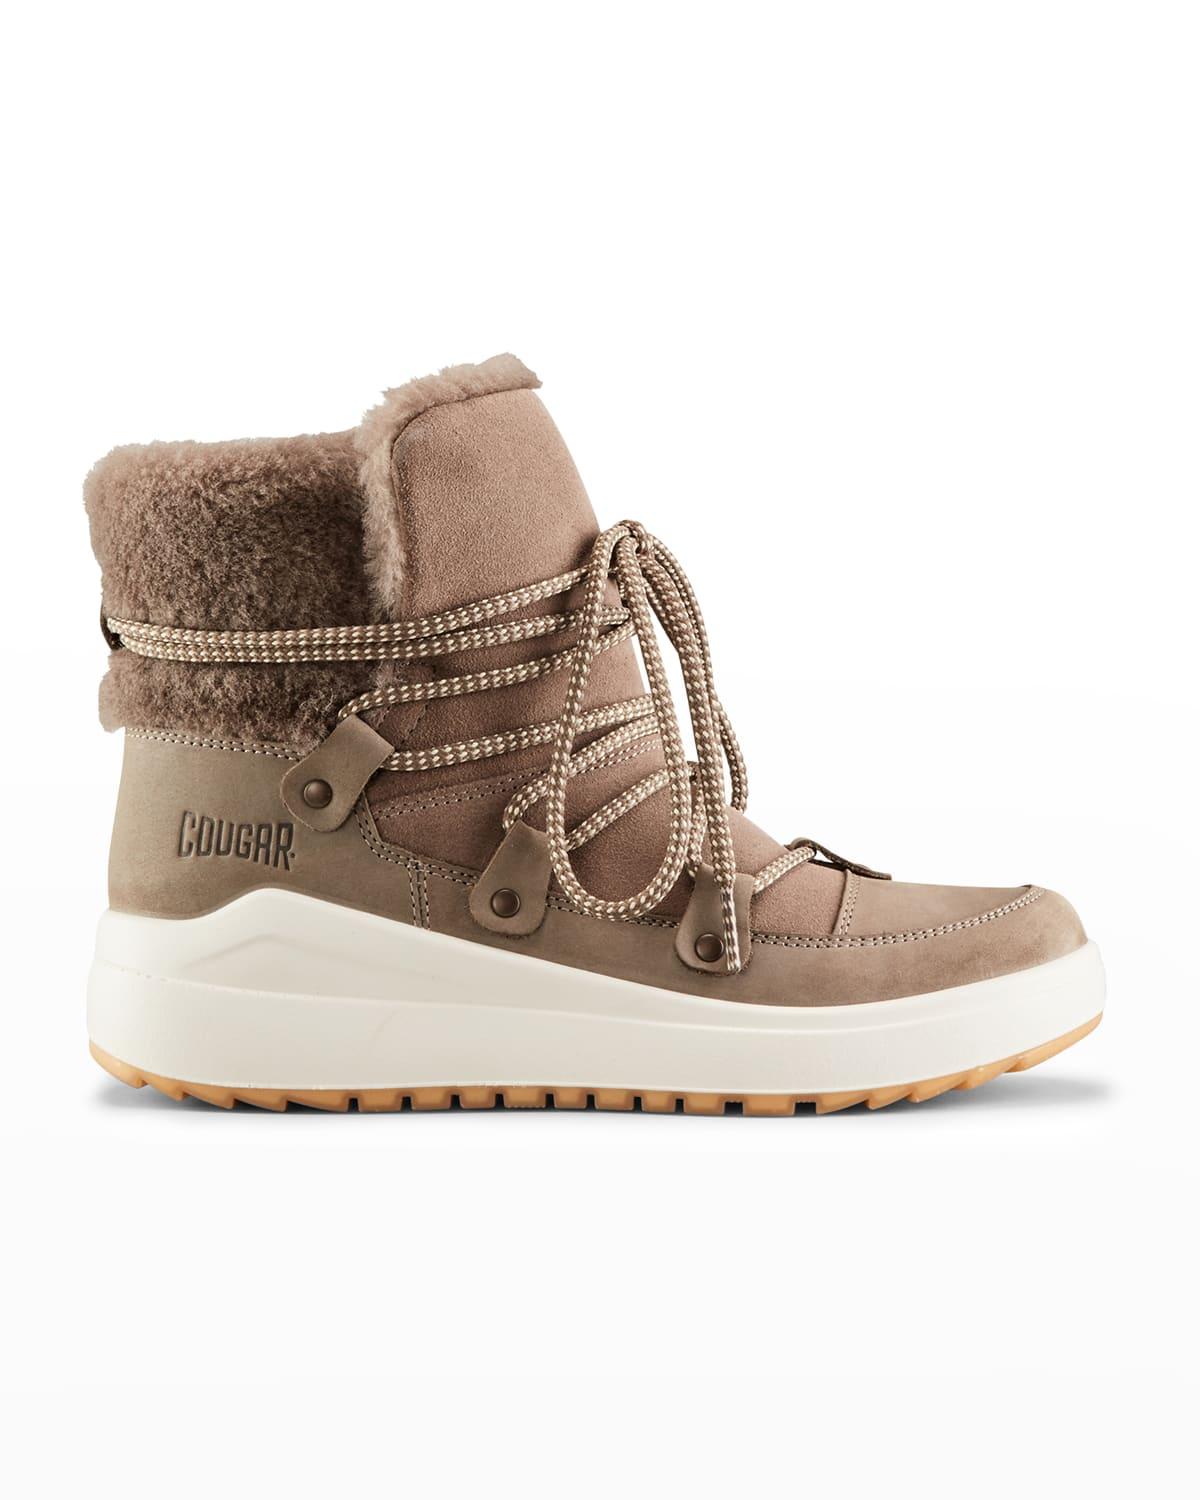 Treville Suede Shearling Winter Boots